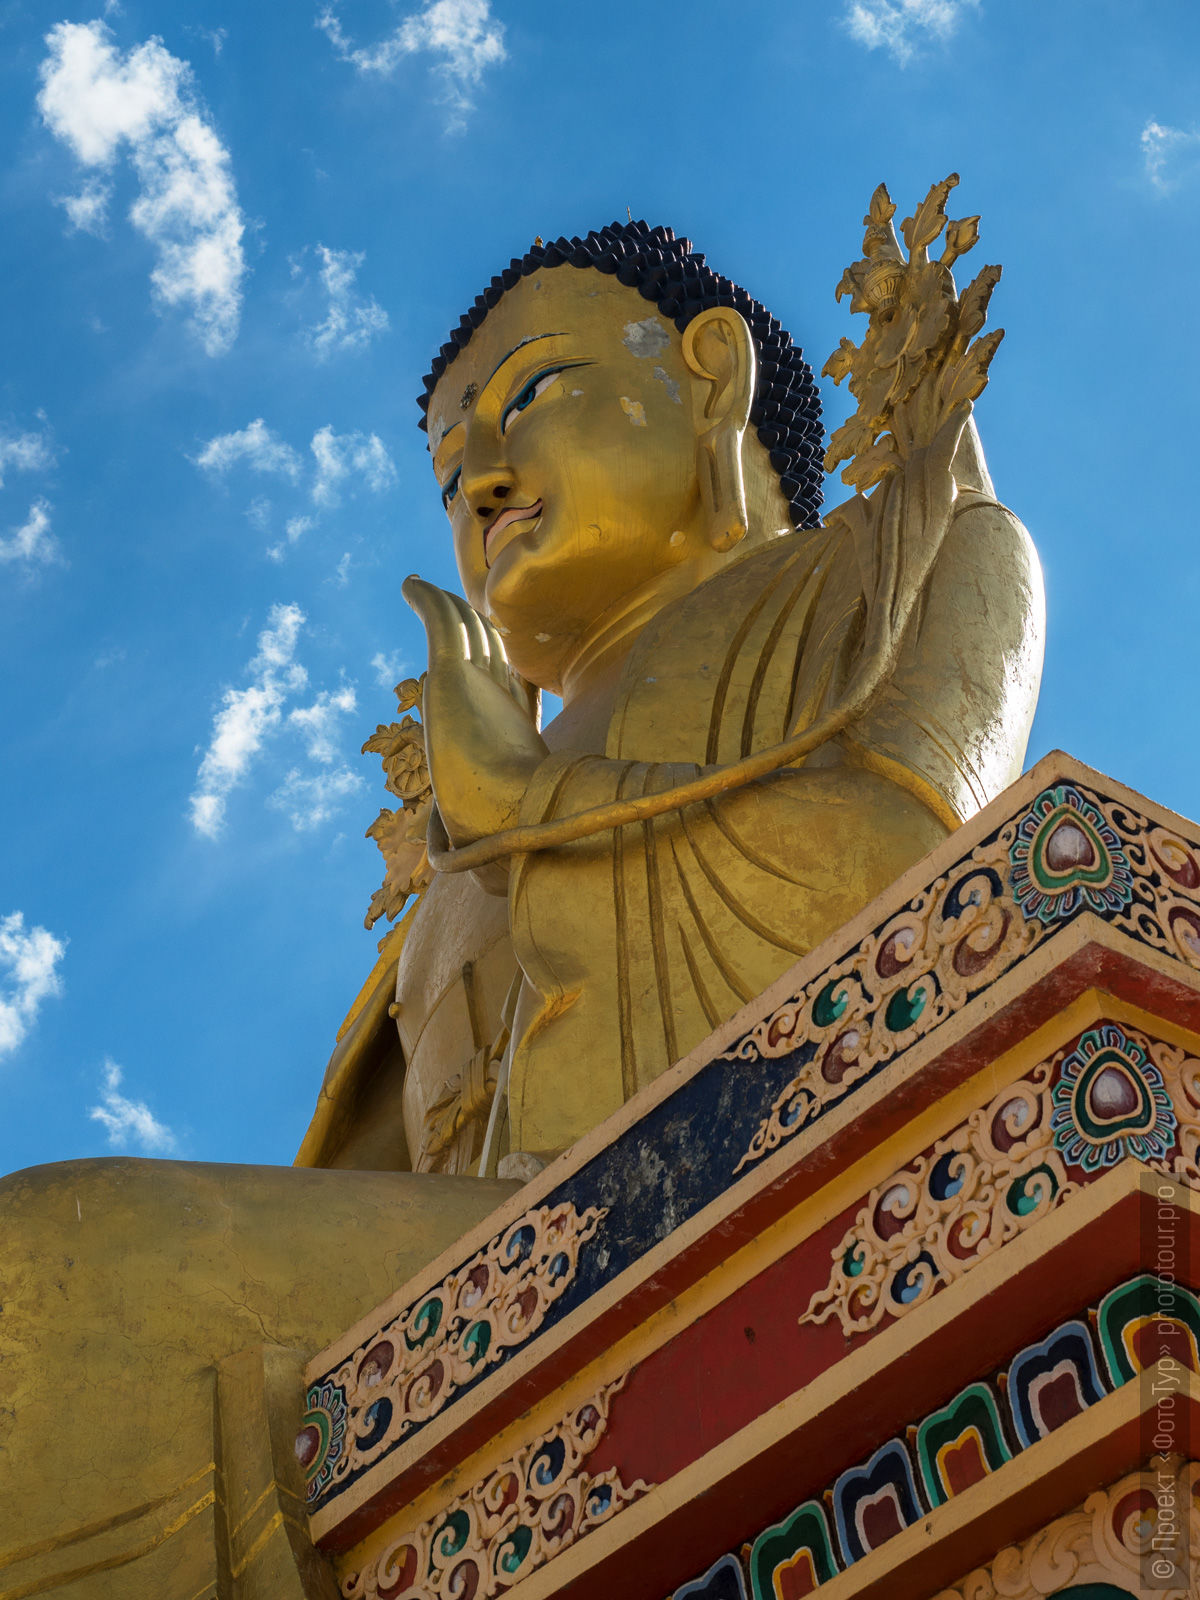 Statue of Buddha Matreya in Likir Monastery. Photo tour to Tibet for the Winter Mysteries in Ladakh, Stok and Matho monasteries, 01.03. - 03/10/2020